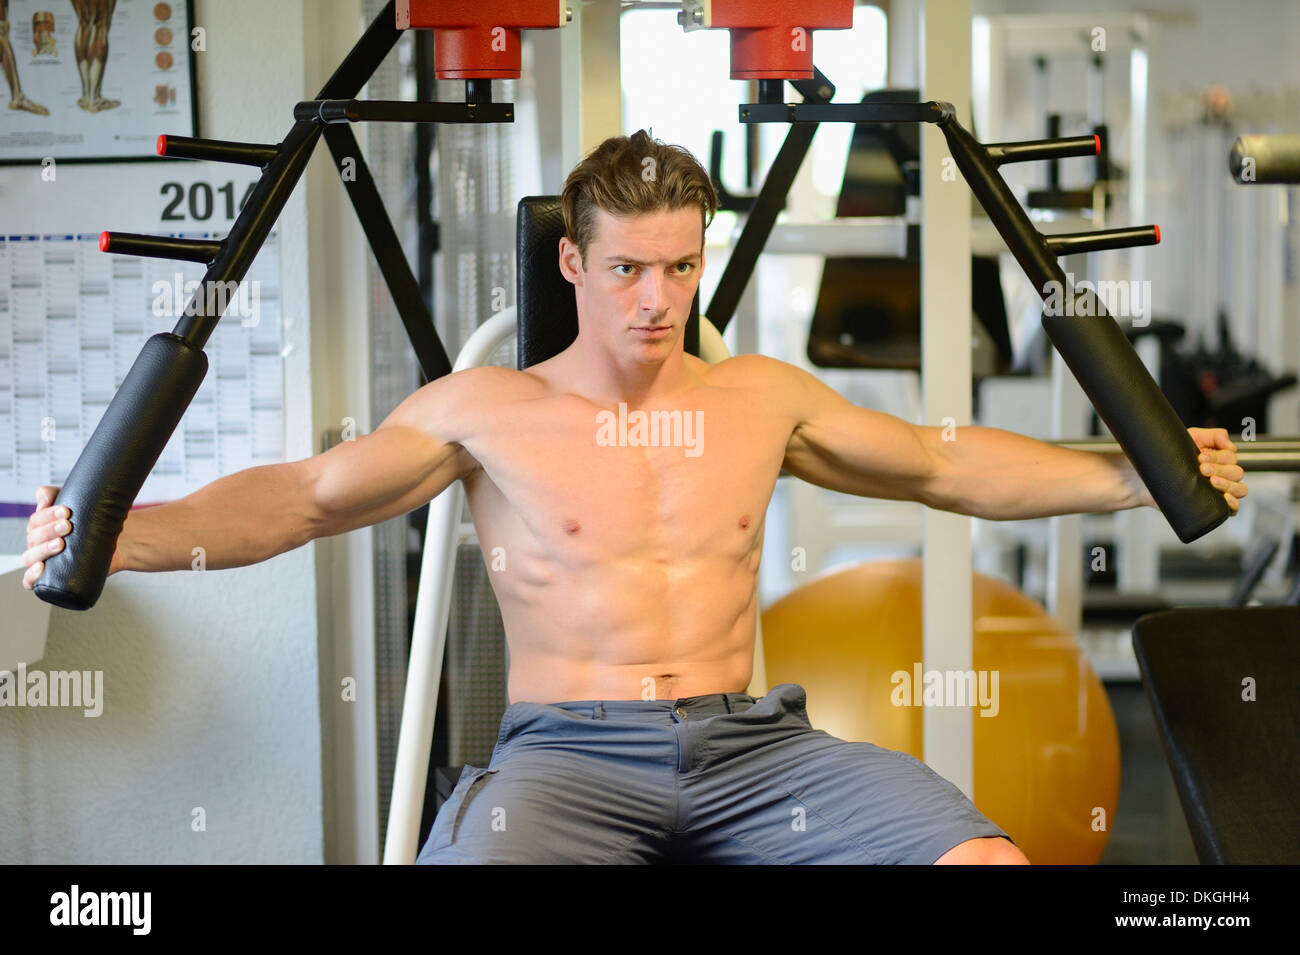 Young man exercising in fitness center - Stock Image